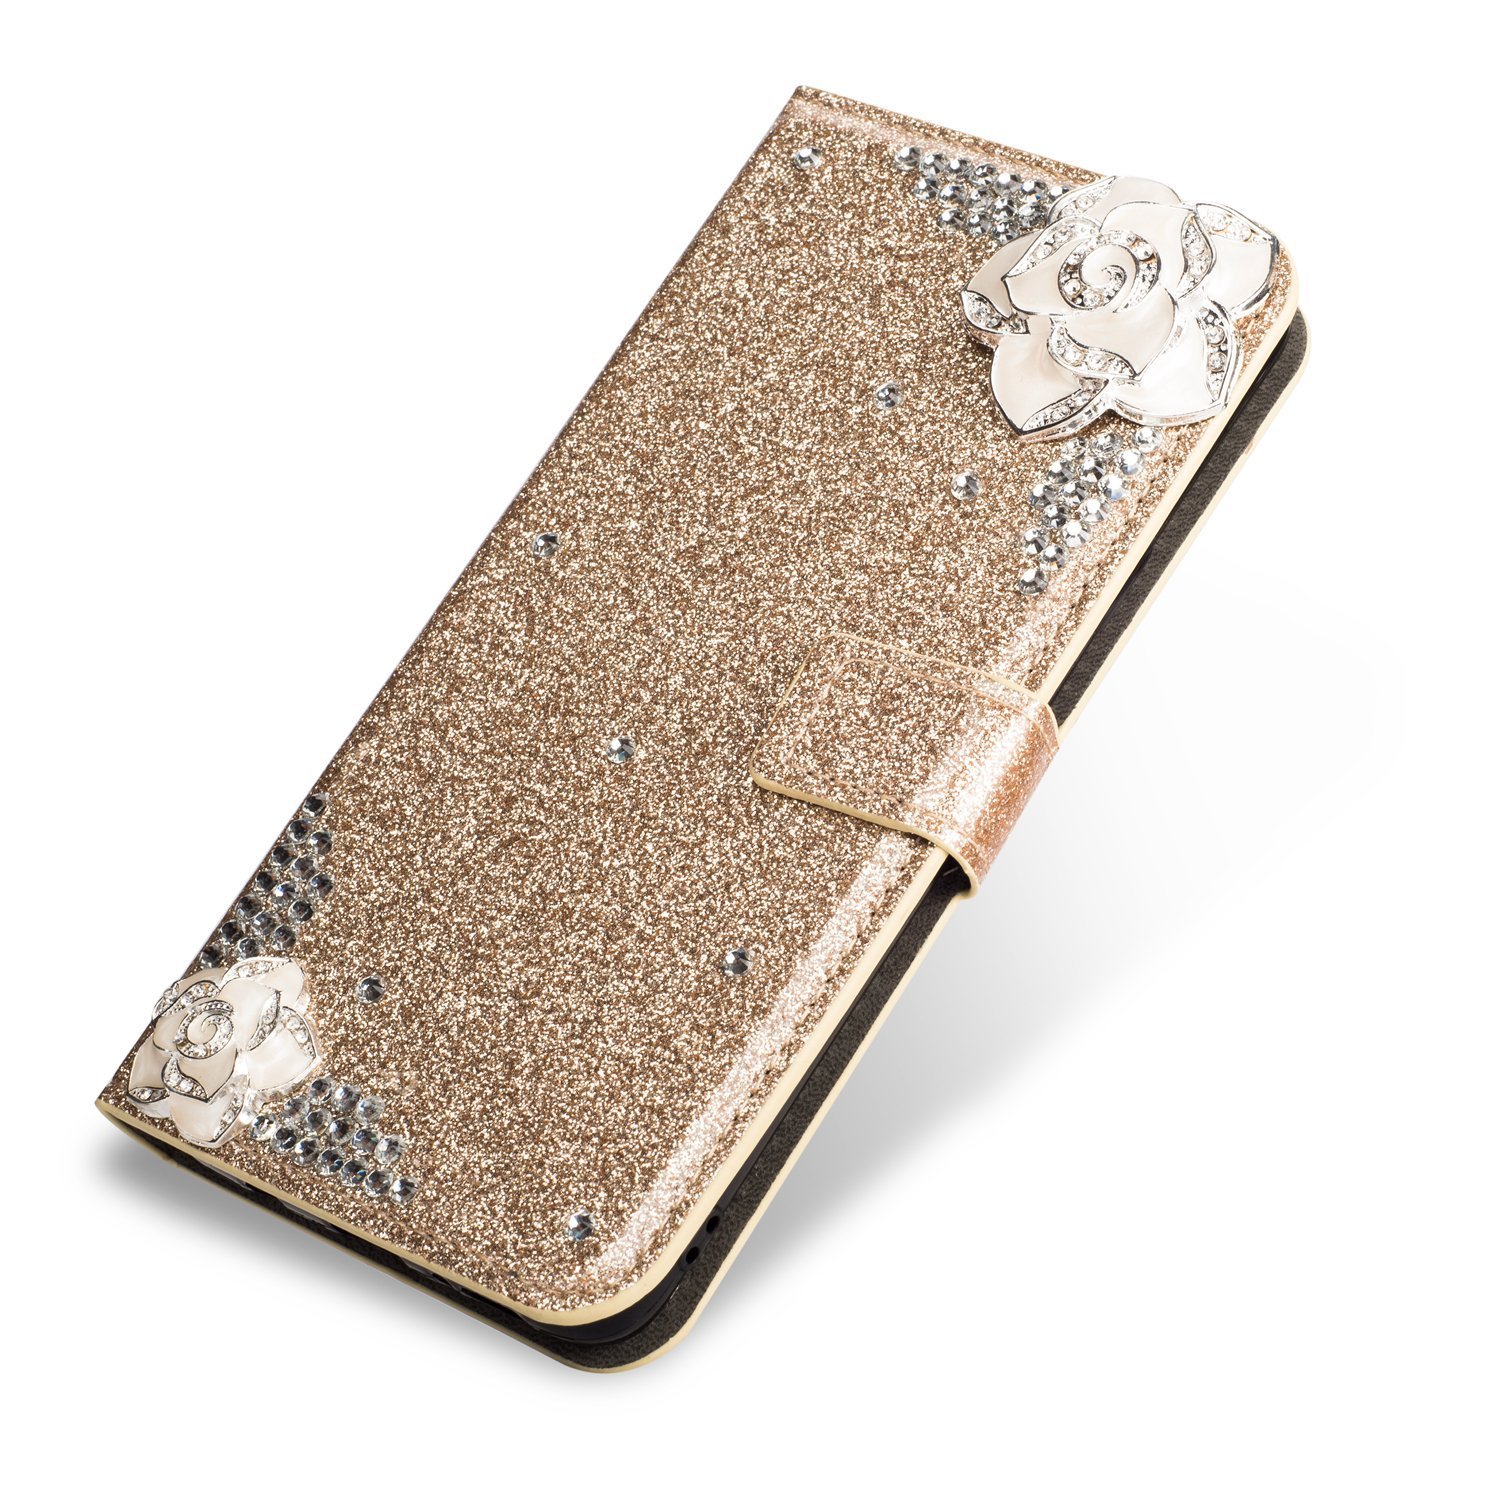 SevenPanda Luxury Bling PU Leather Wallet Case for Galaxy A8 2018, Diamond Glitter Crystal Rhinstone 3D Feather Flower Magnetic Clasp Flip Folio Stand Case for Samsung Galaxy A530/A5 2018 - Gold A530-ZuanPiT-Jin